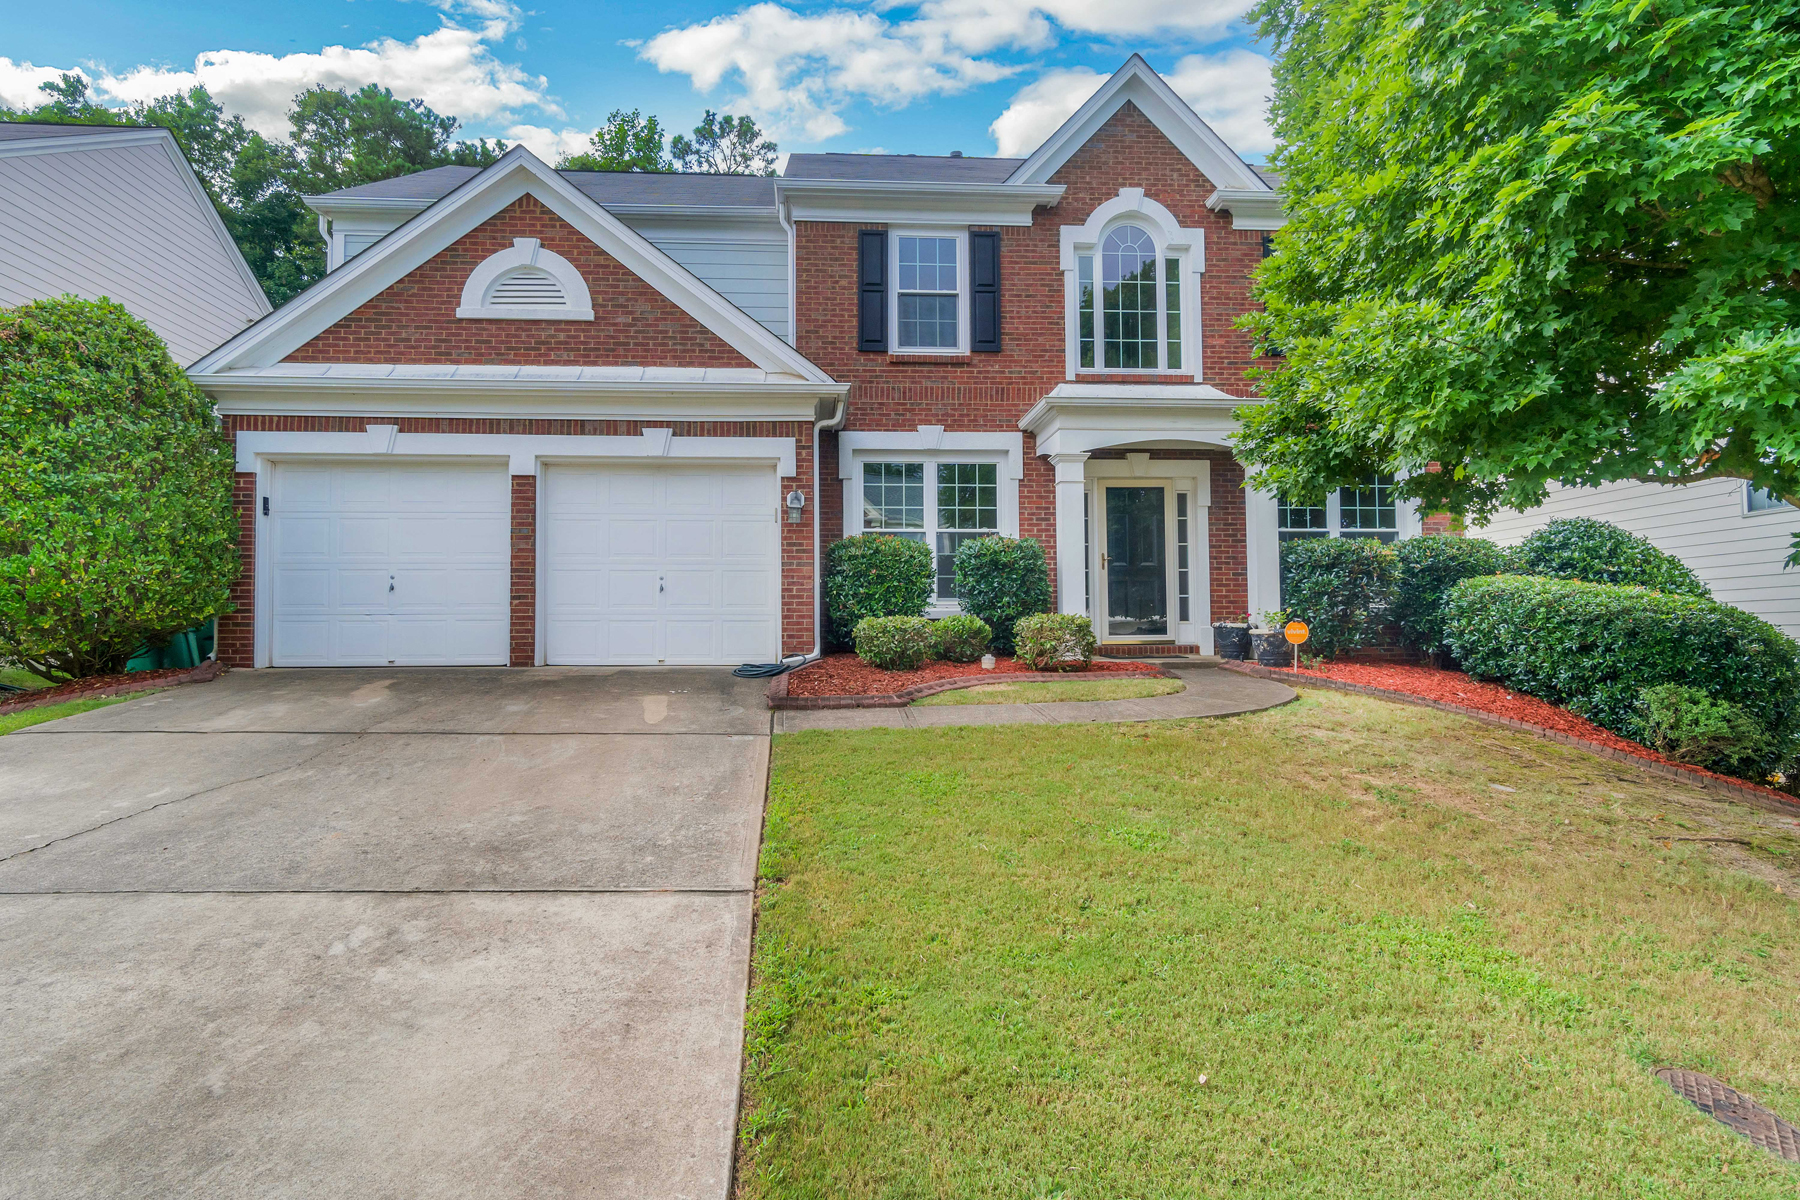 Single Family Home for Sale at Outstanding Brookshire Gem 328 Sanita Anita Ave Woodstock, Georgia 30189 United States